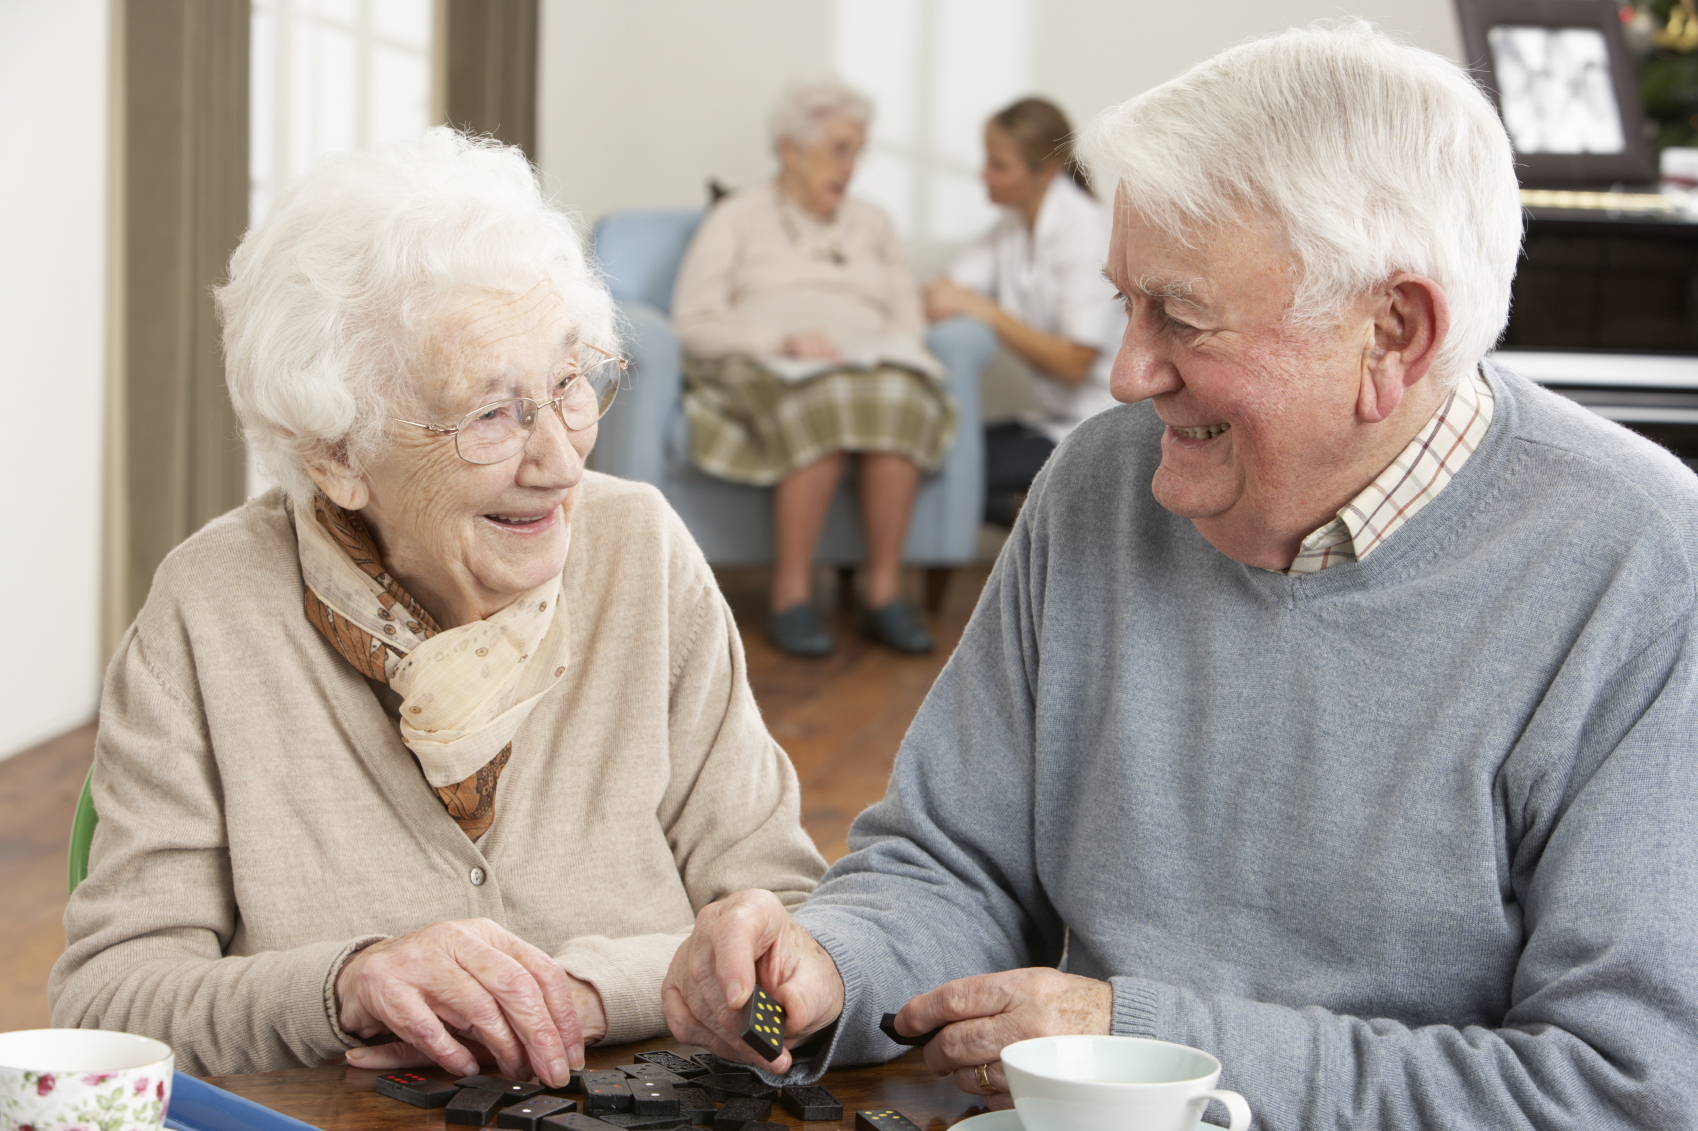 People in care home